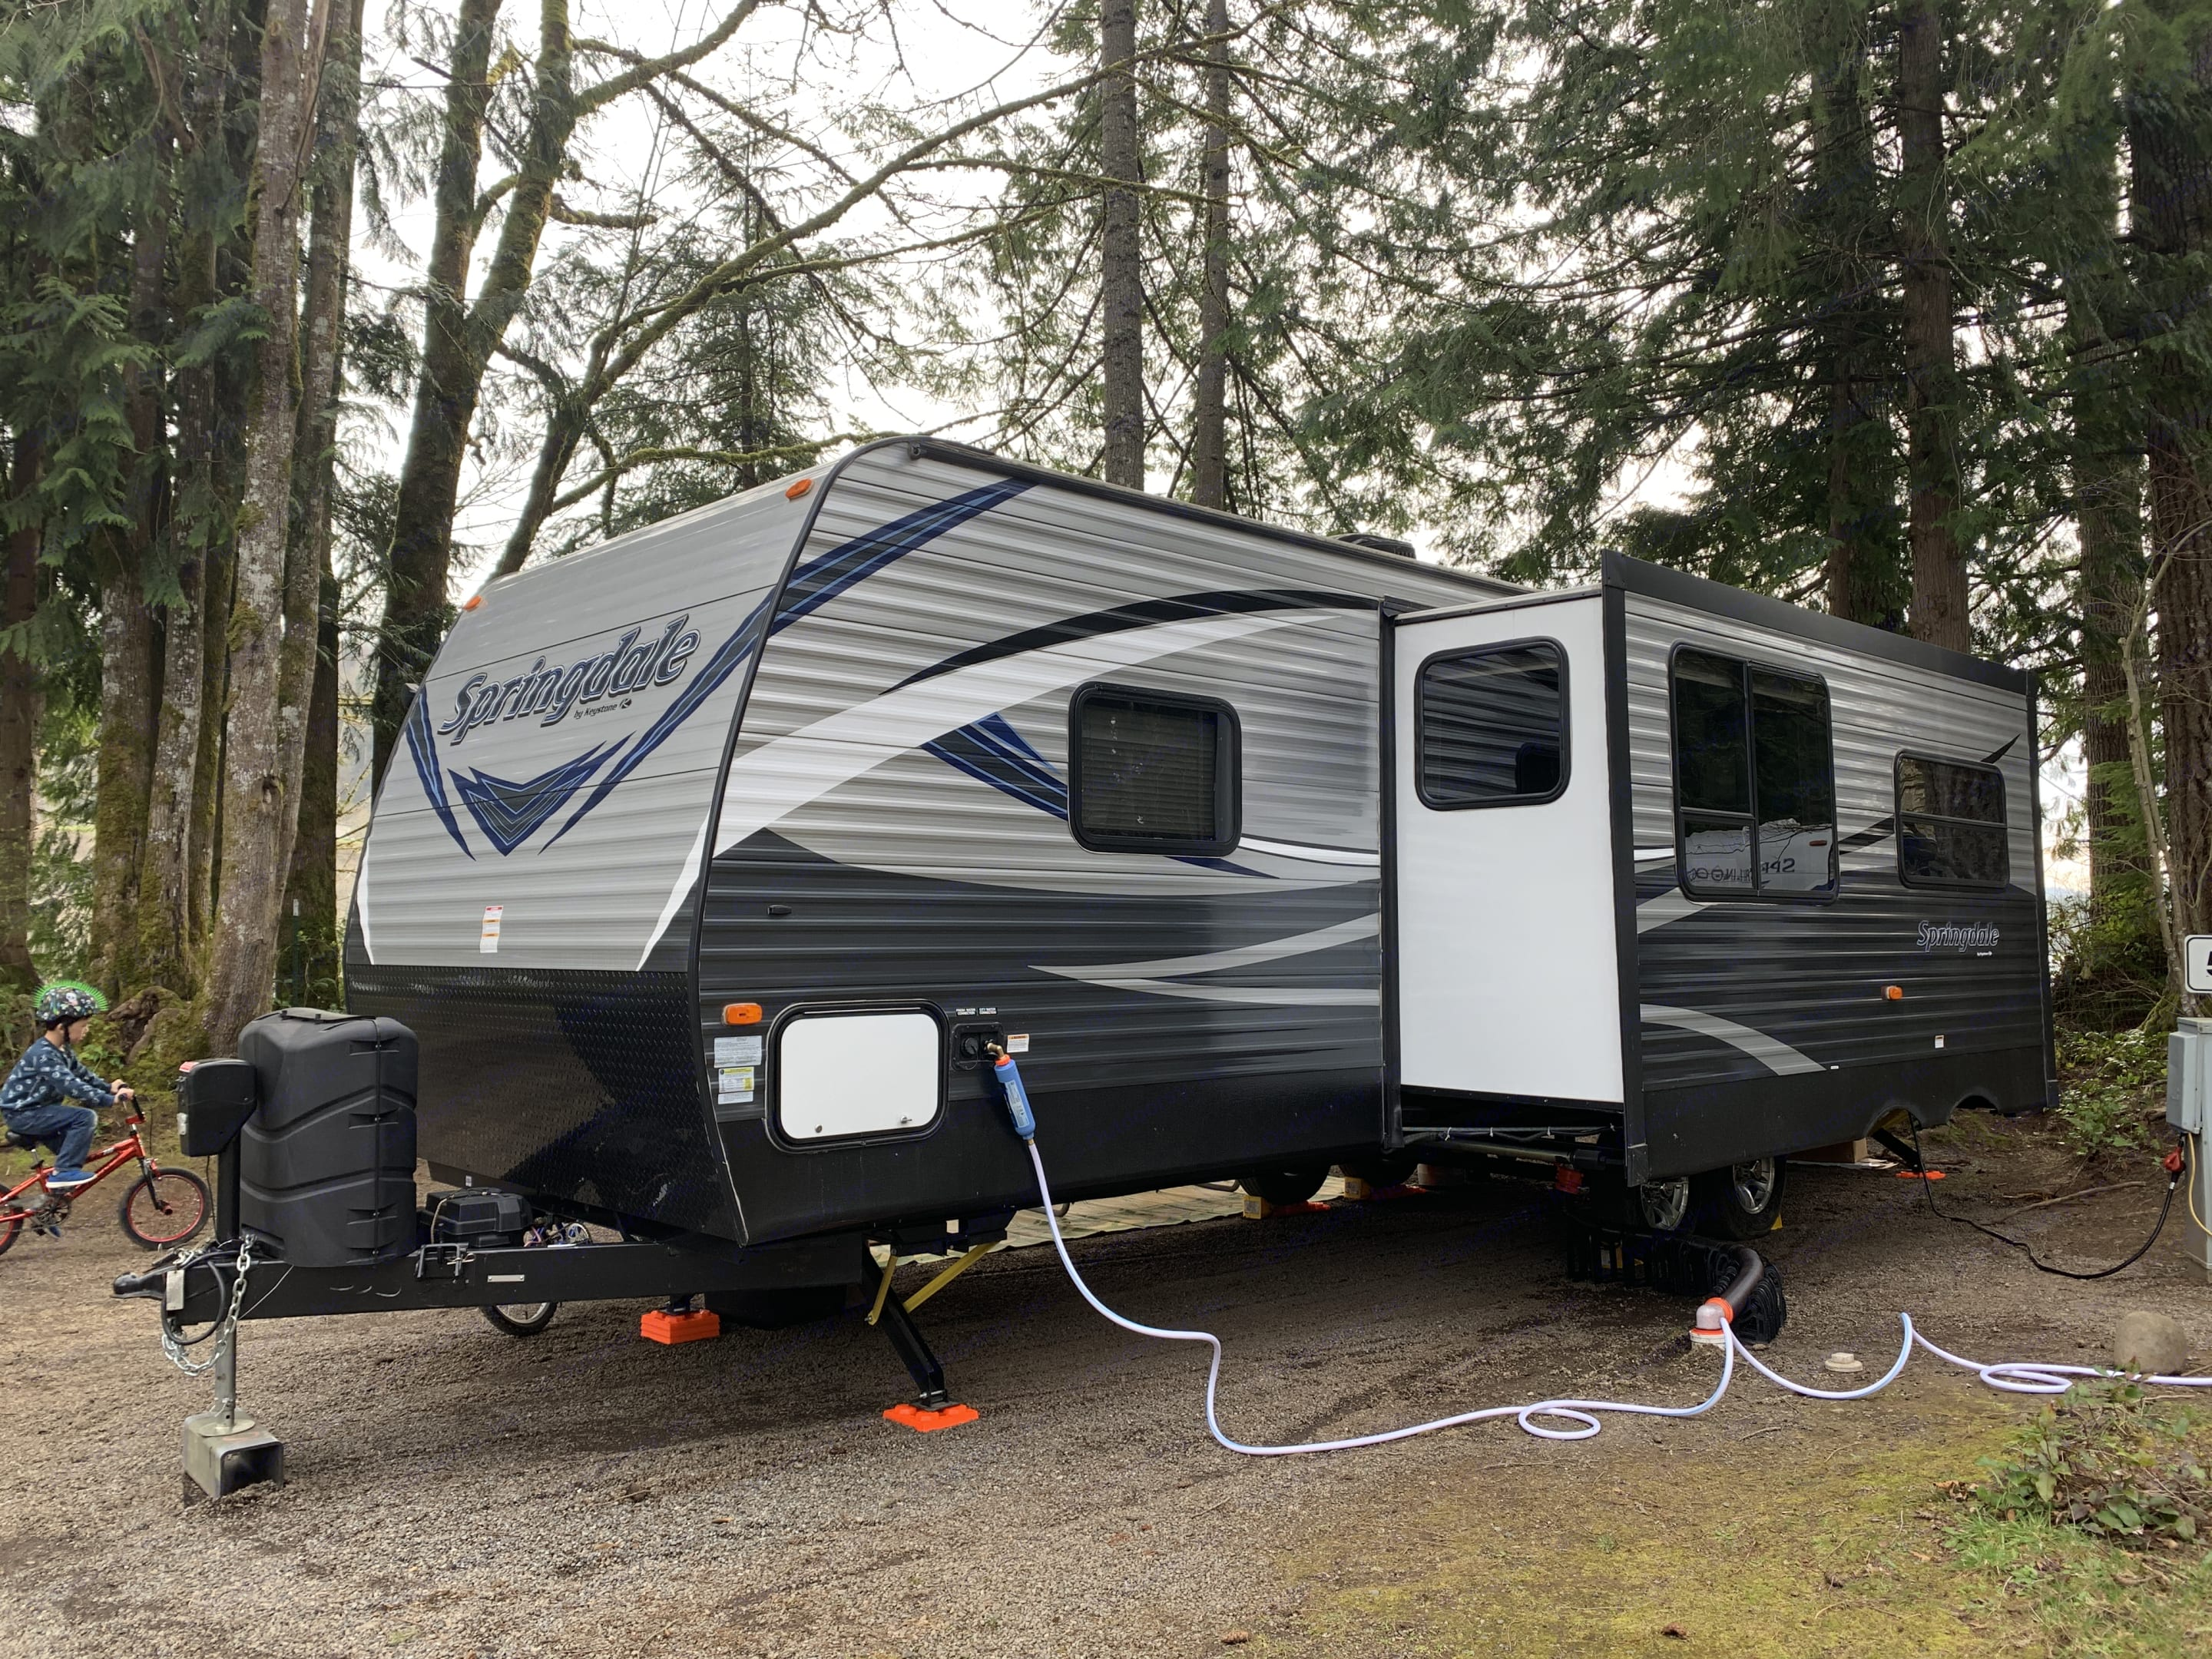 The other side of the rig showing the hookups.. Keystone Springdale 2018